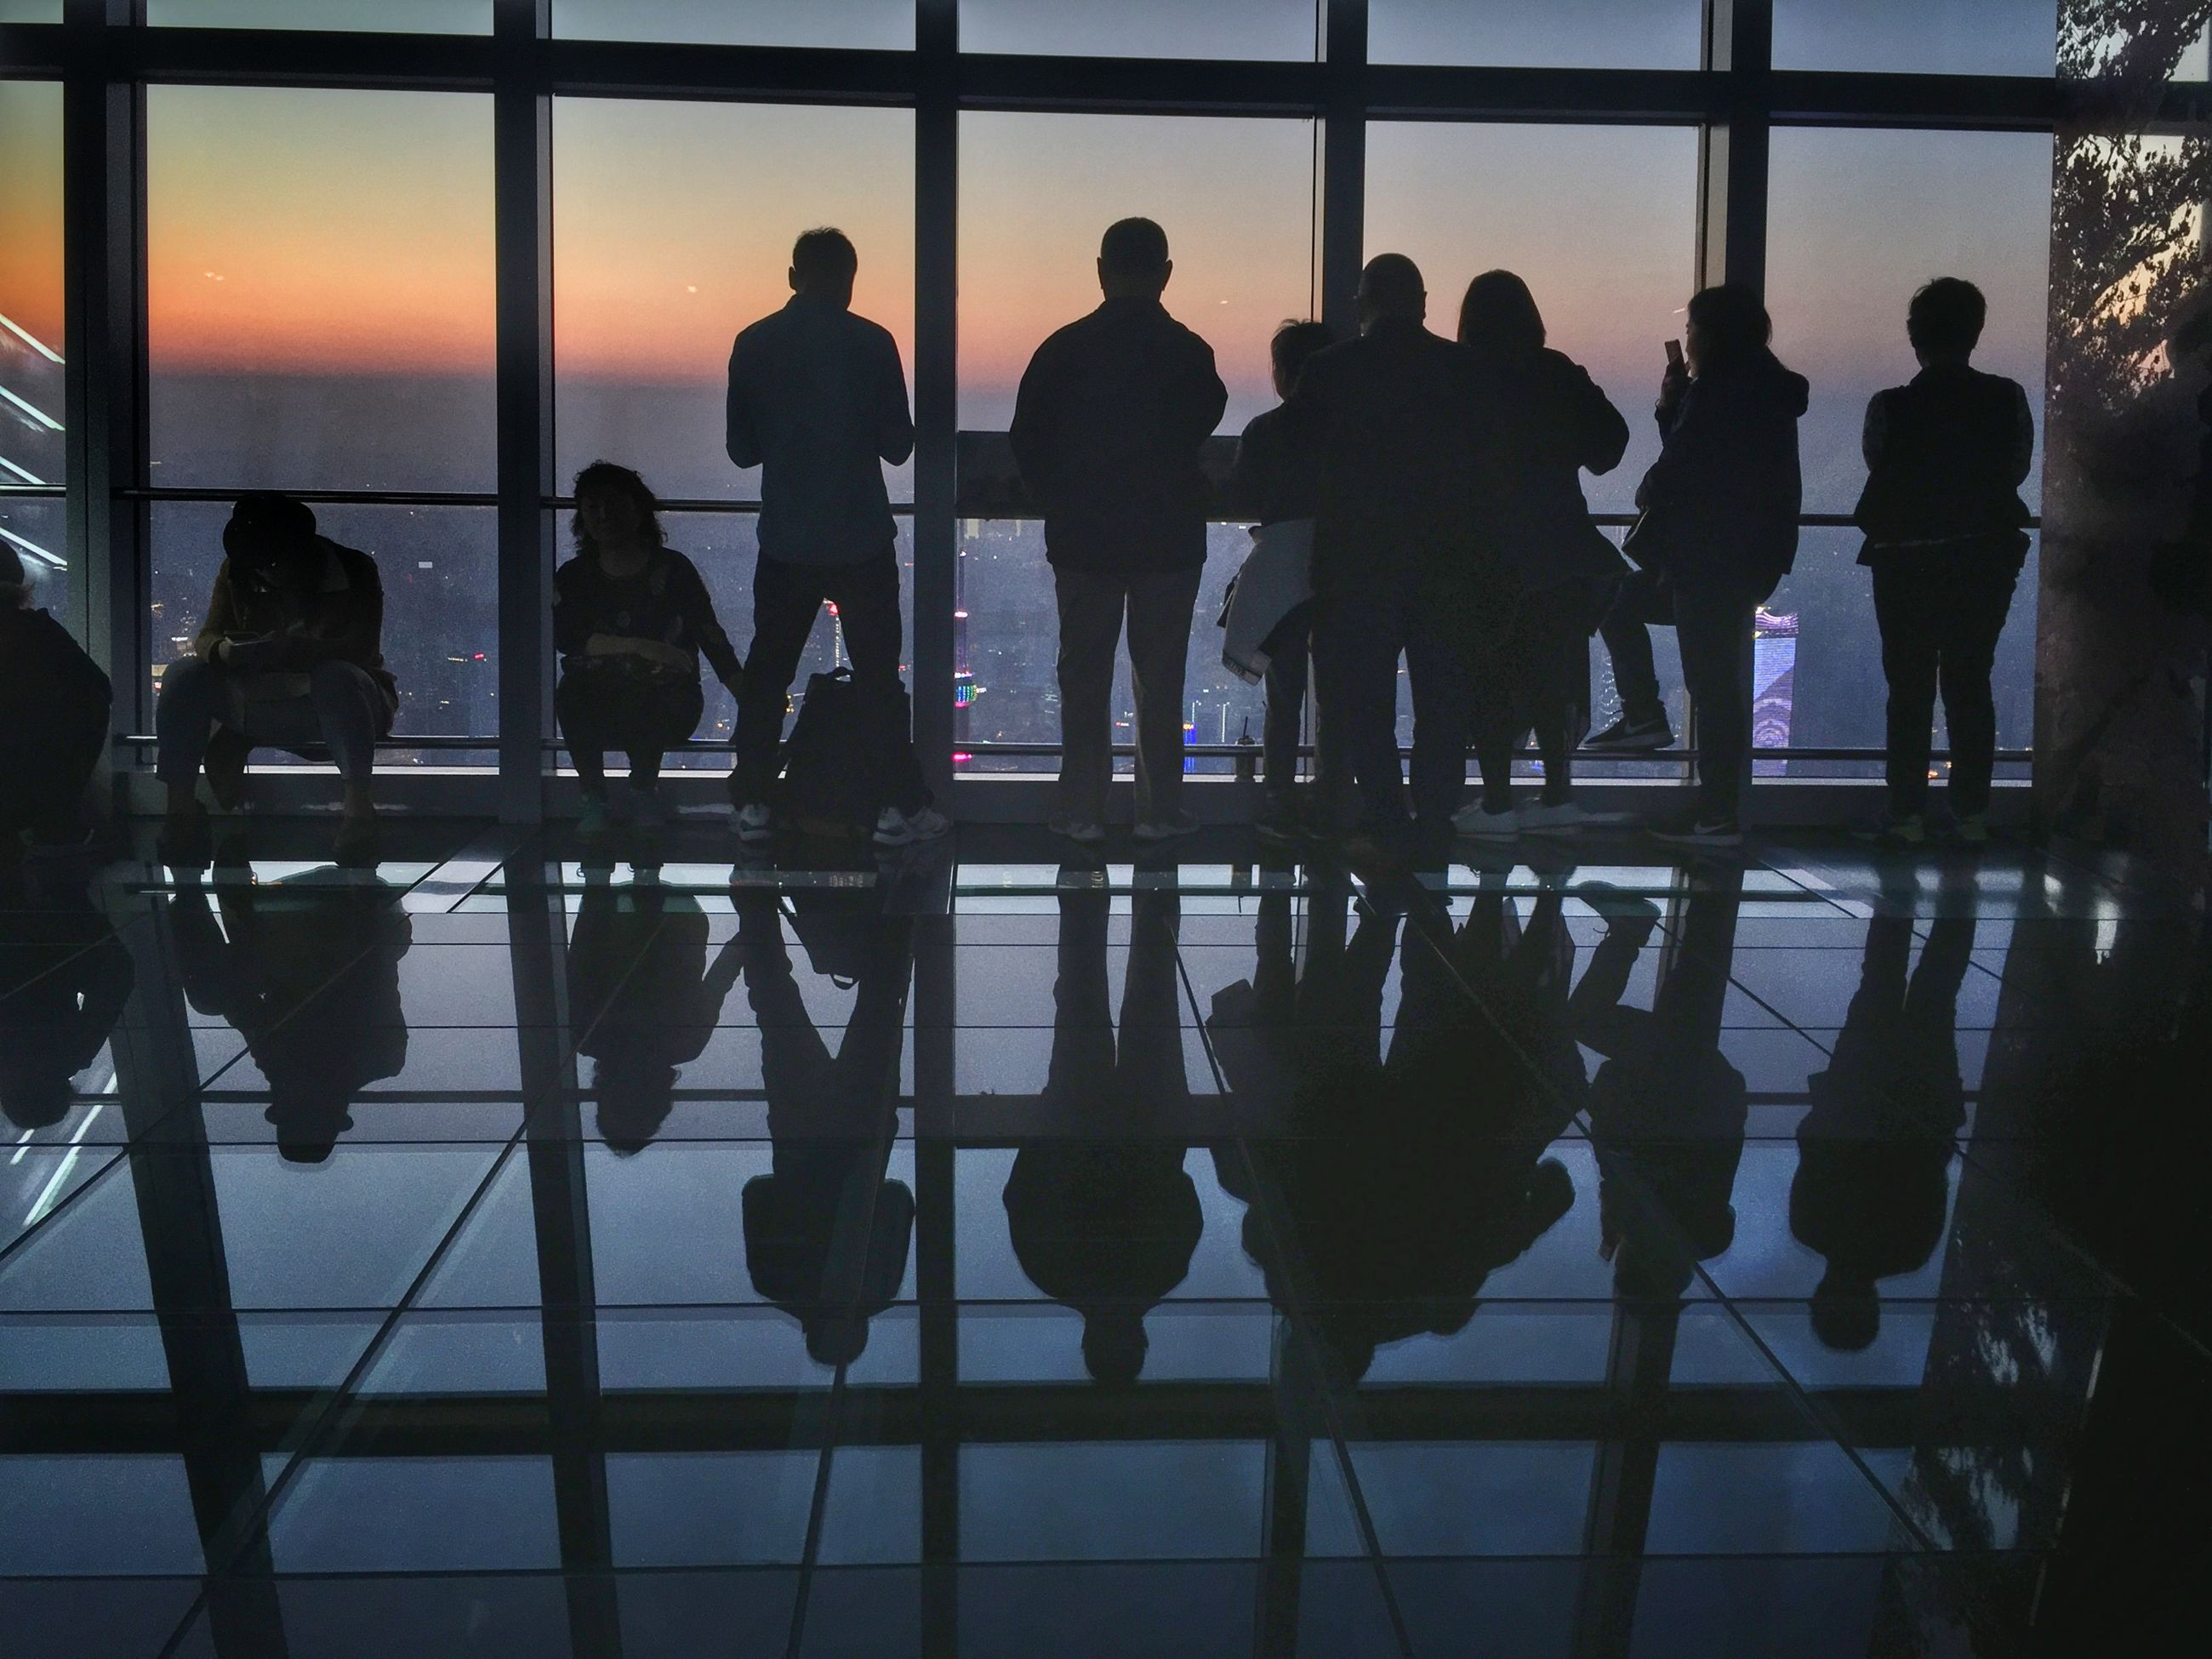 group of people, silhouette, real people, reflection, women, flooring, indoors, airport, group, people, adult, lifestyles, men, glass - material, travel, window, medium group of people, sunset, architecture, standing, tiled floor, waiting